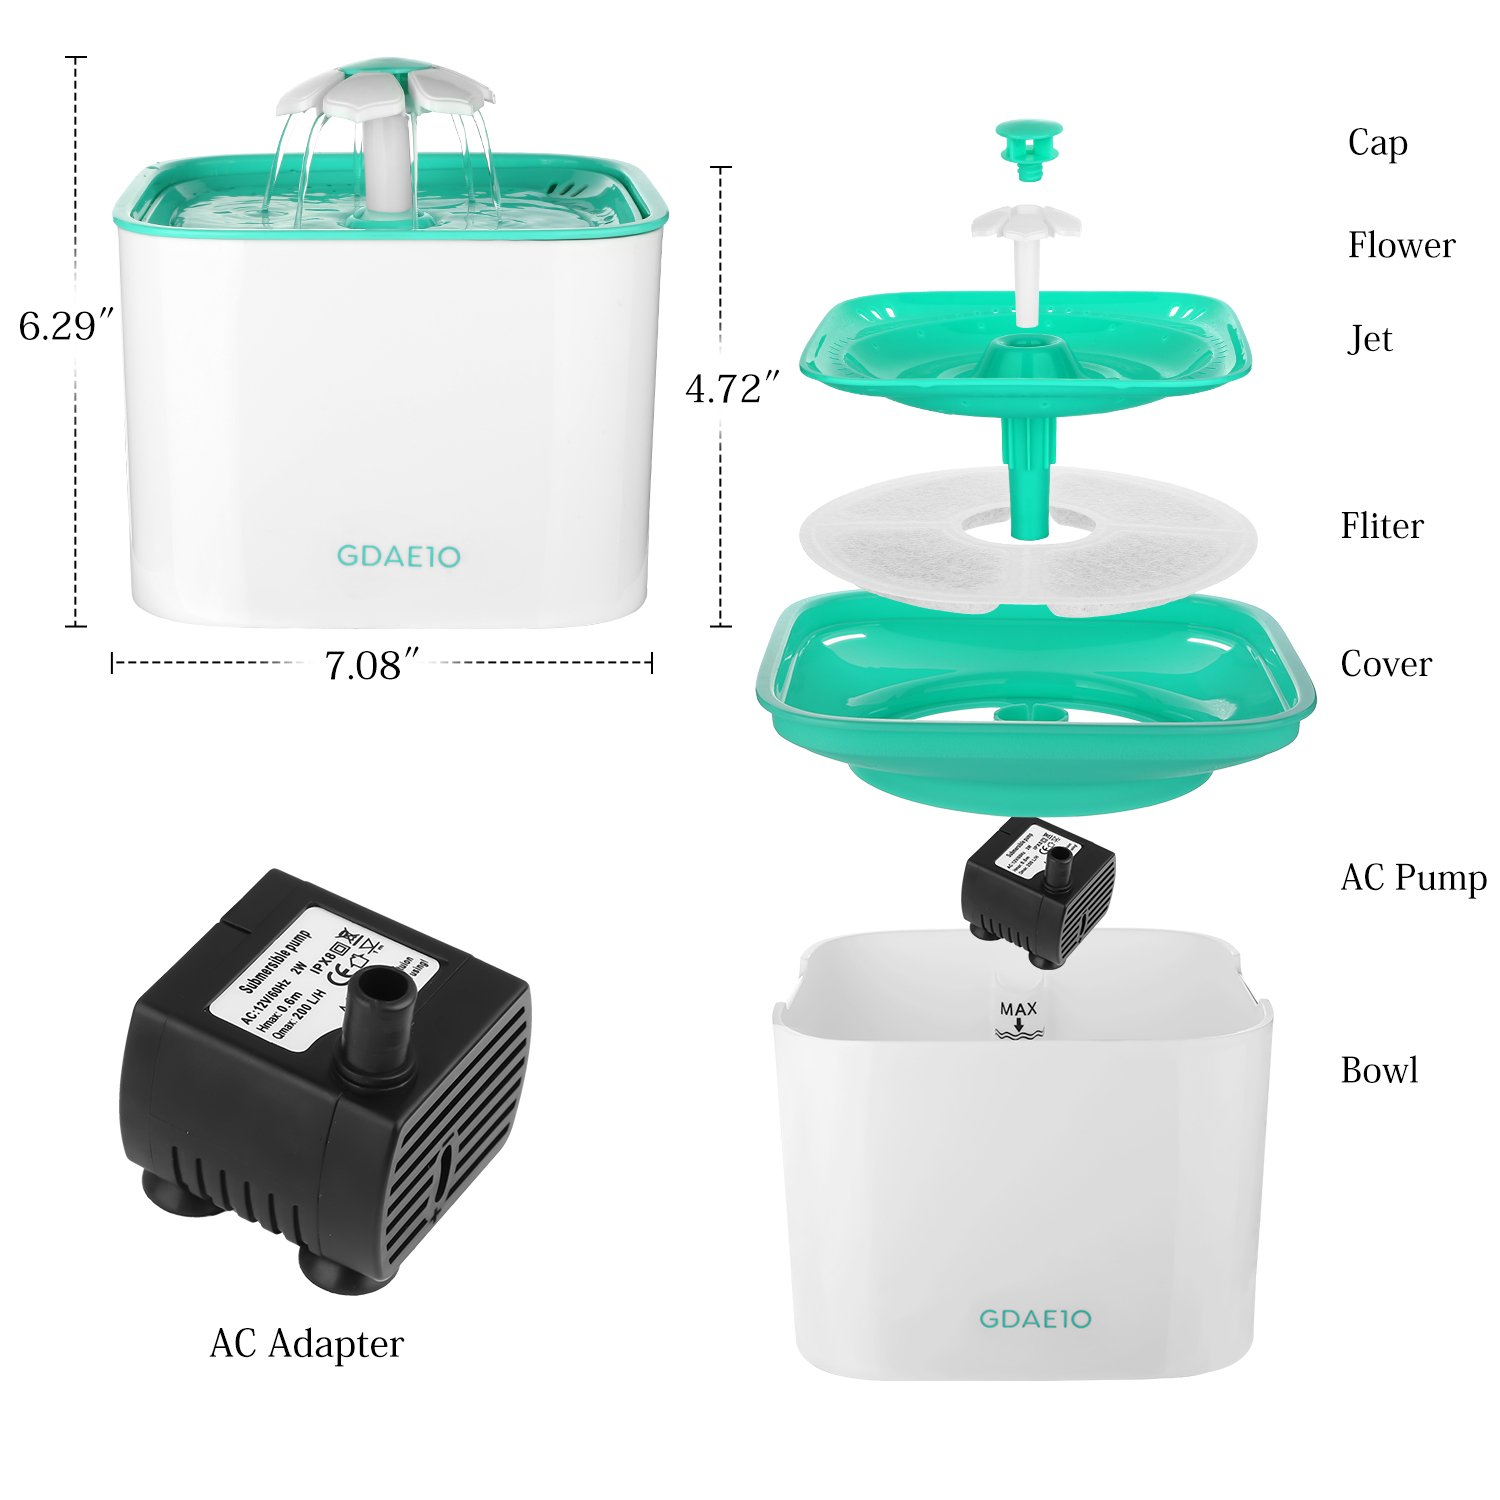 GDAE10 Pet Fountain, Cat Water Dispenser, Automatic Pet Drinking Fountain 2L Super Quiet Flower Circulating Silent Pump with 2 Replacement Filters for Cats, Dogs, Birds and Small Animals by GDAE10 (Image #1)